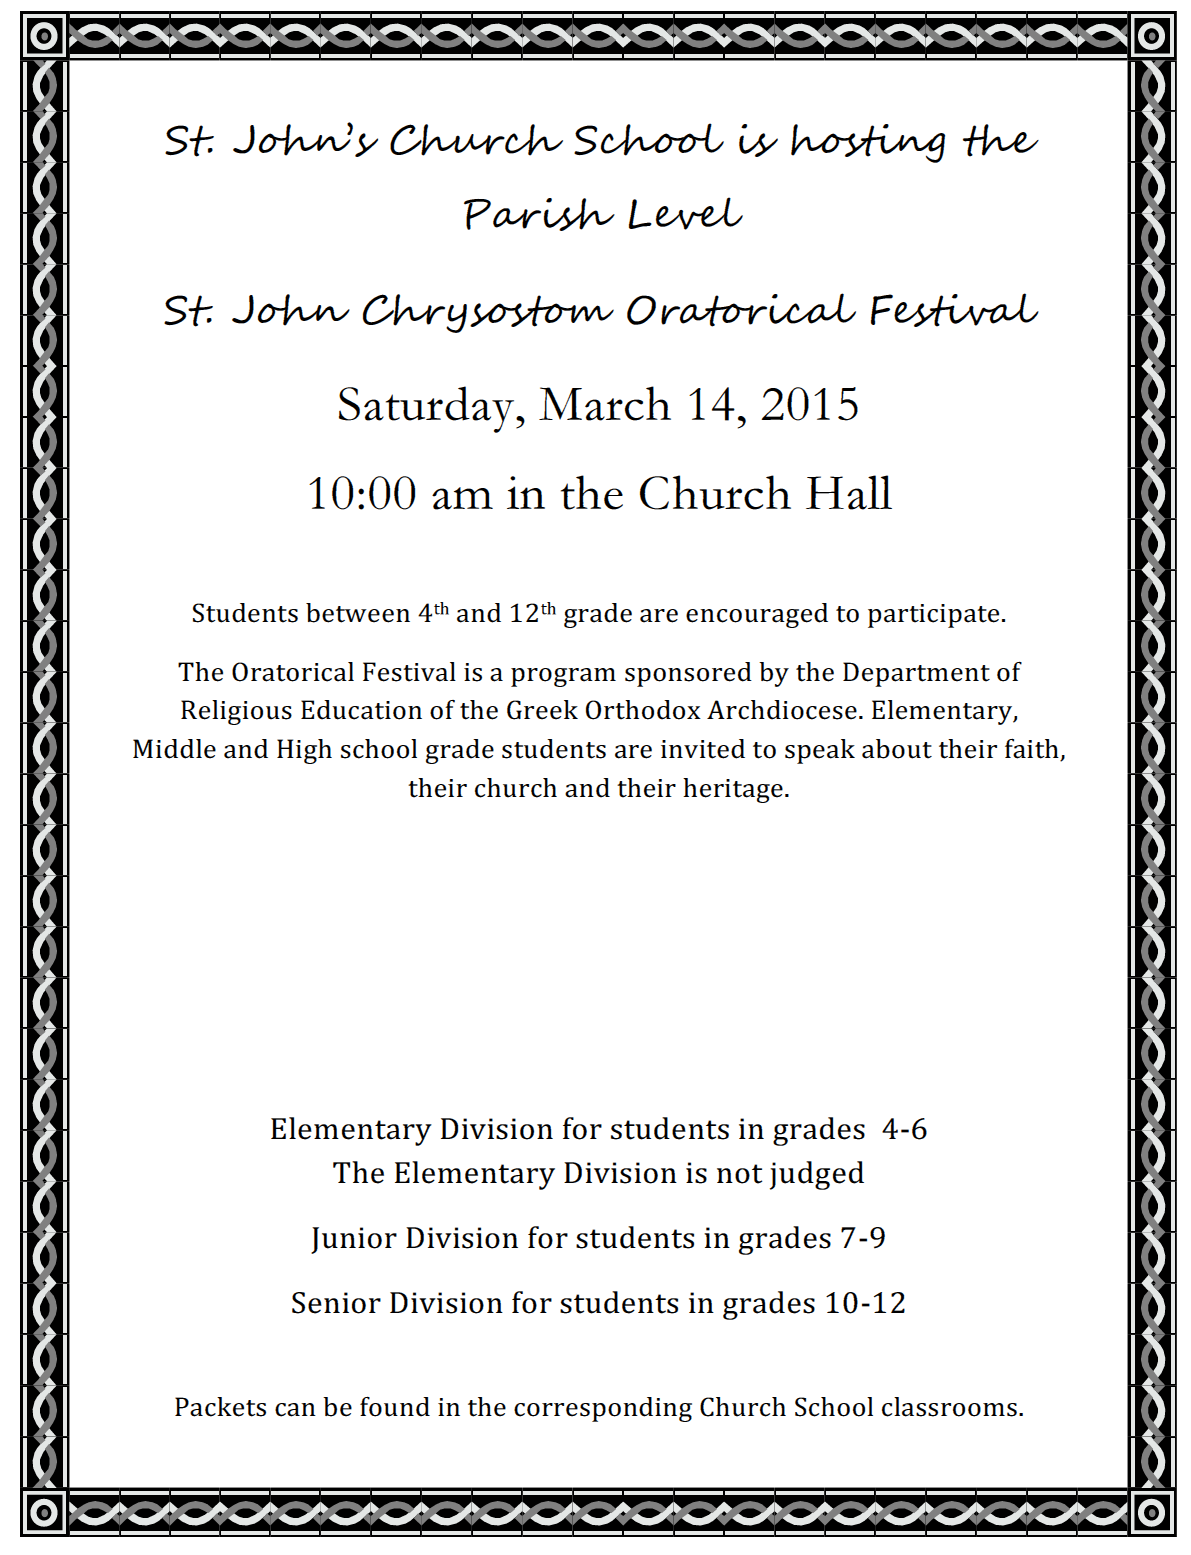 Students between 4th and 12th grade are encouraged to participate. The Oratorical Festival is a program sponsored by the Department of Religious Education of the Greek Orthodox Archdiocese.